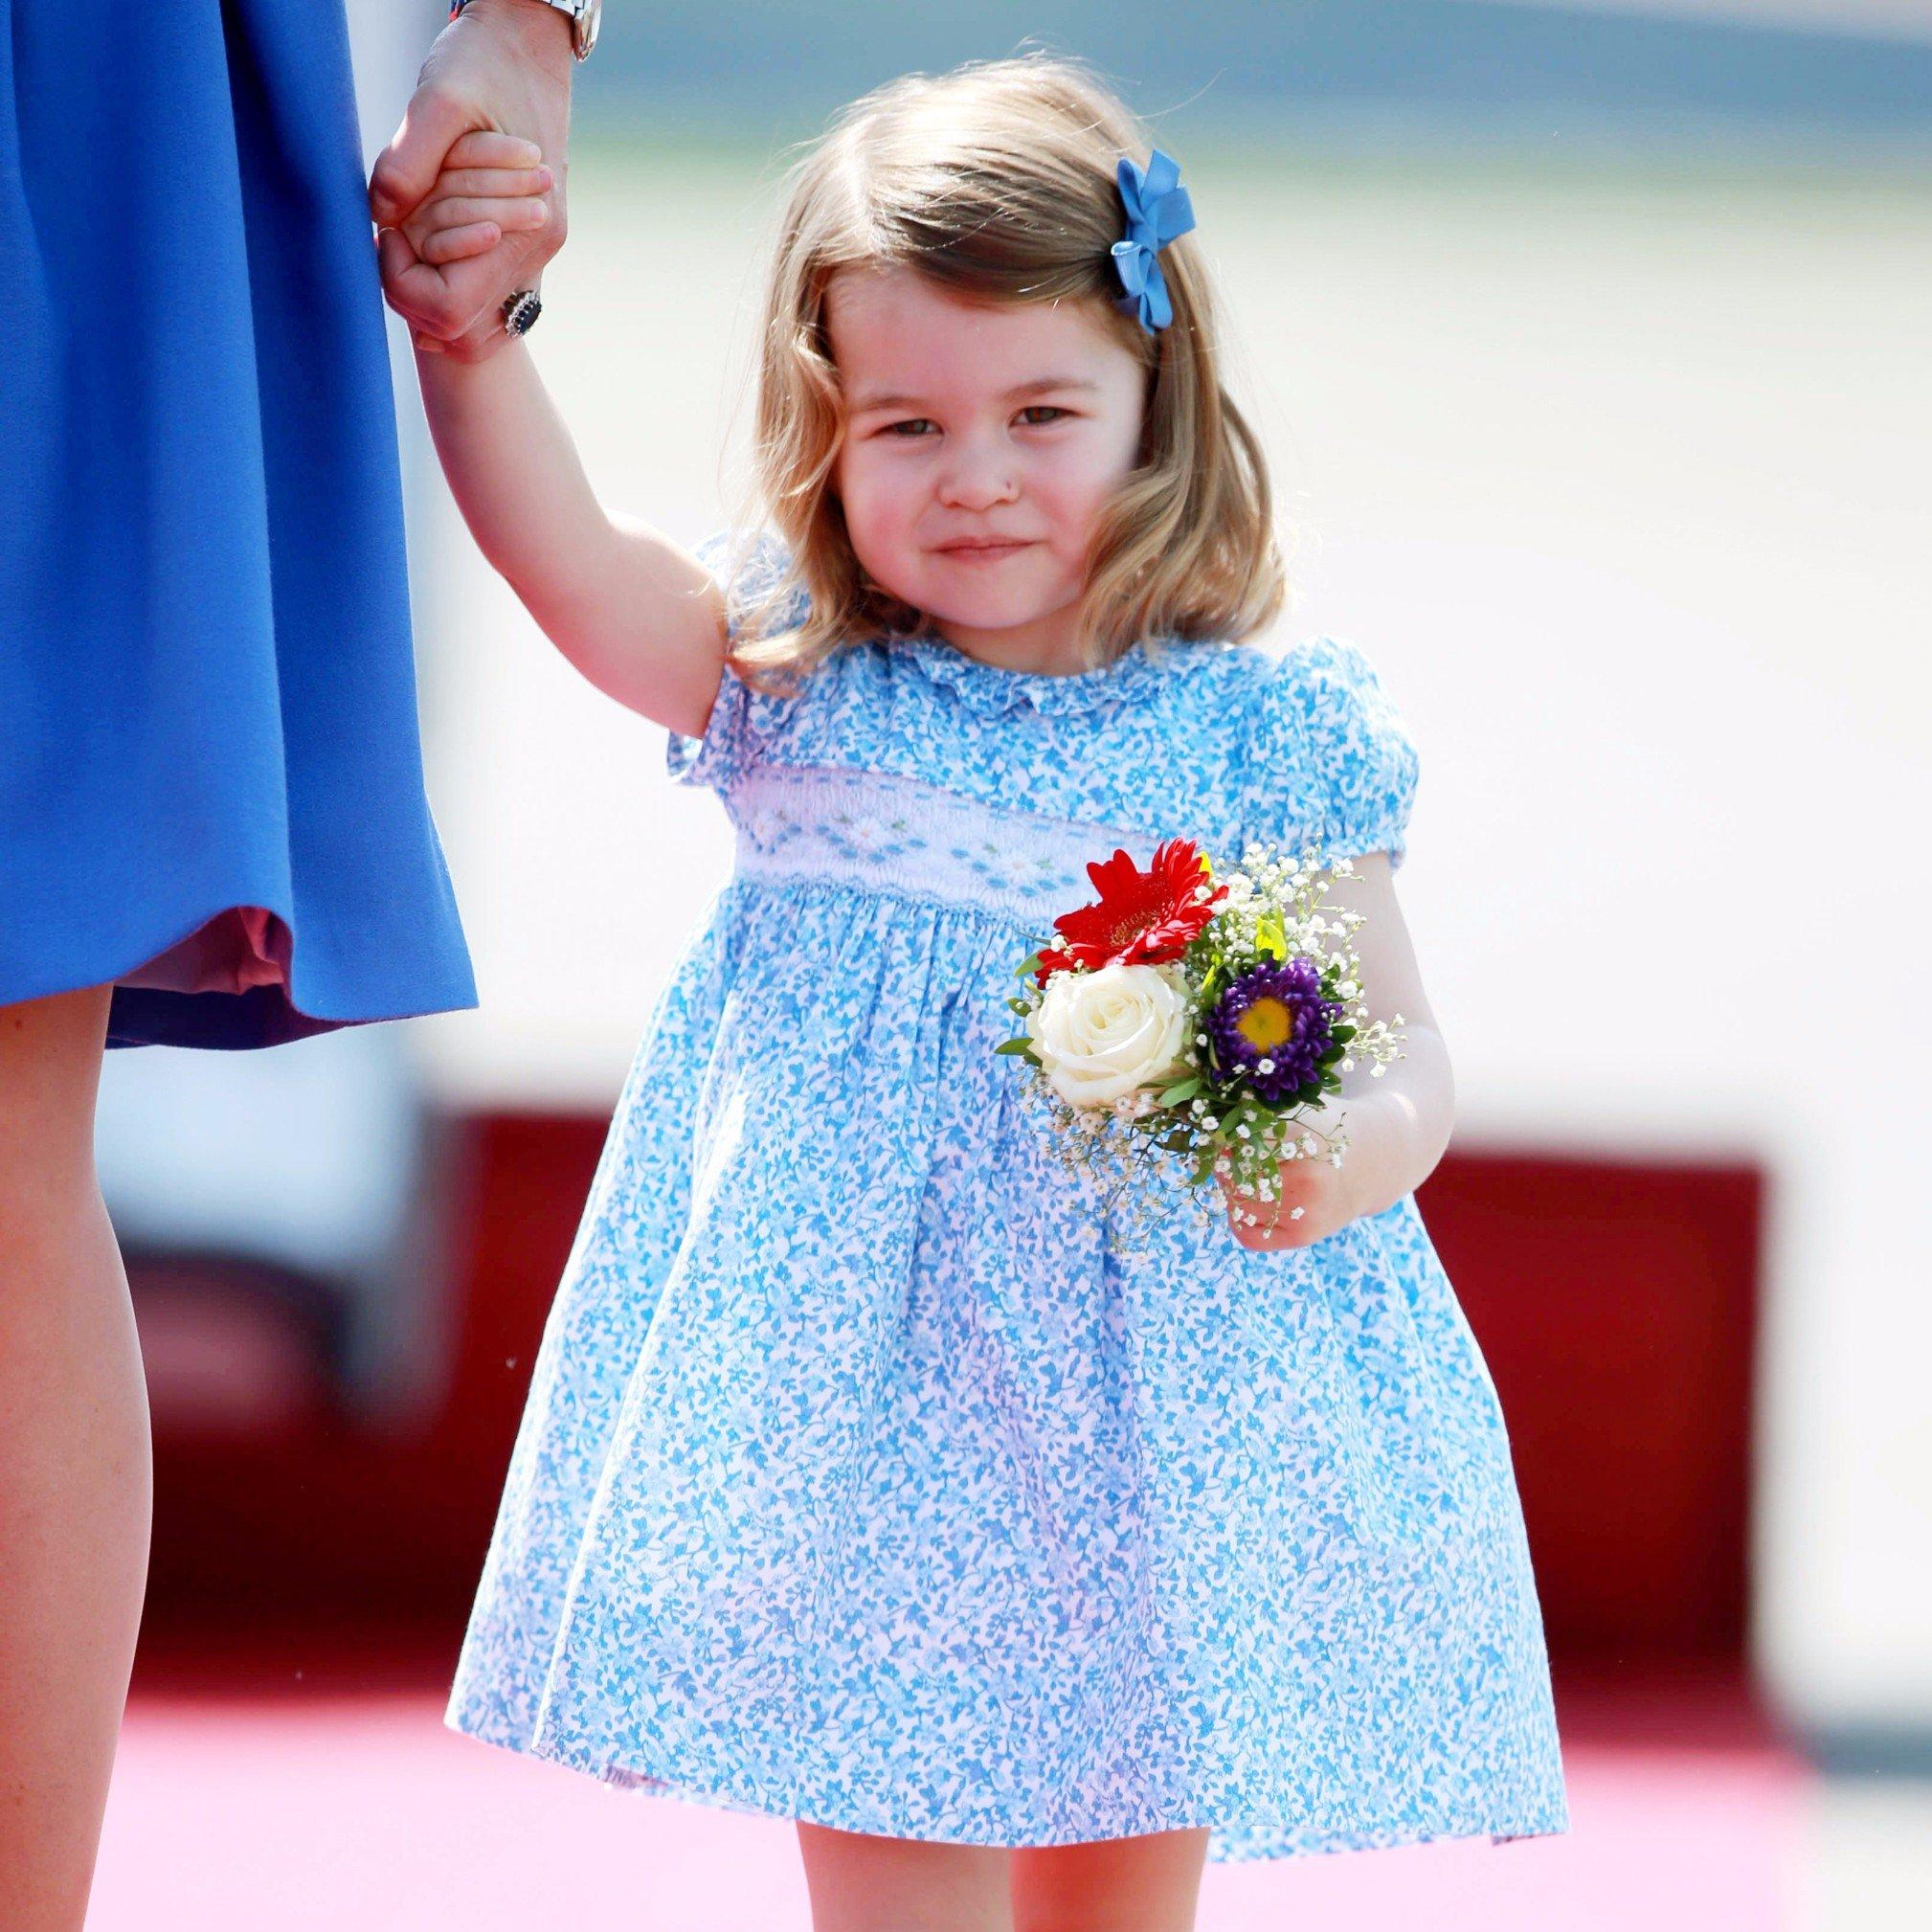 The 1 Thing The New Royal Baby Can't Take Away From